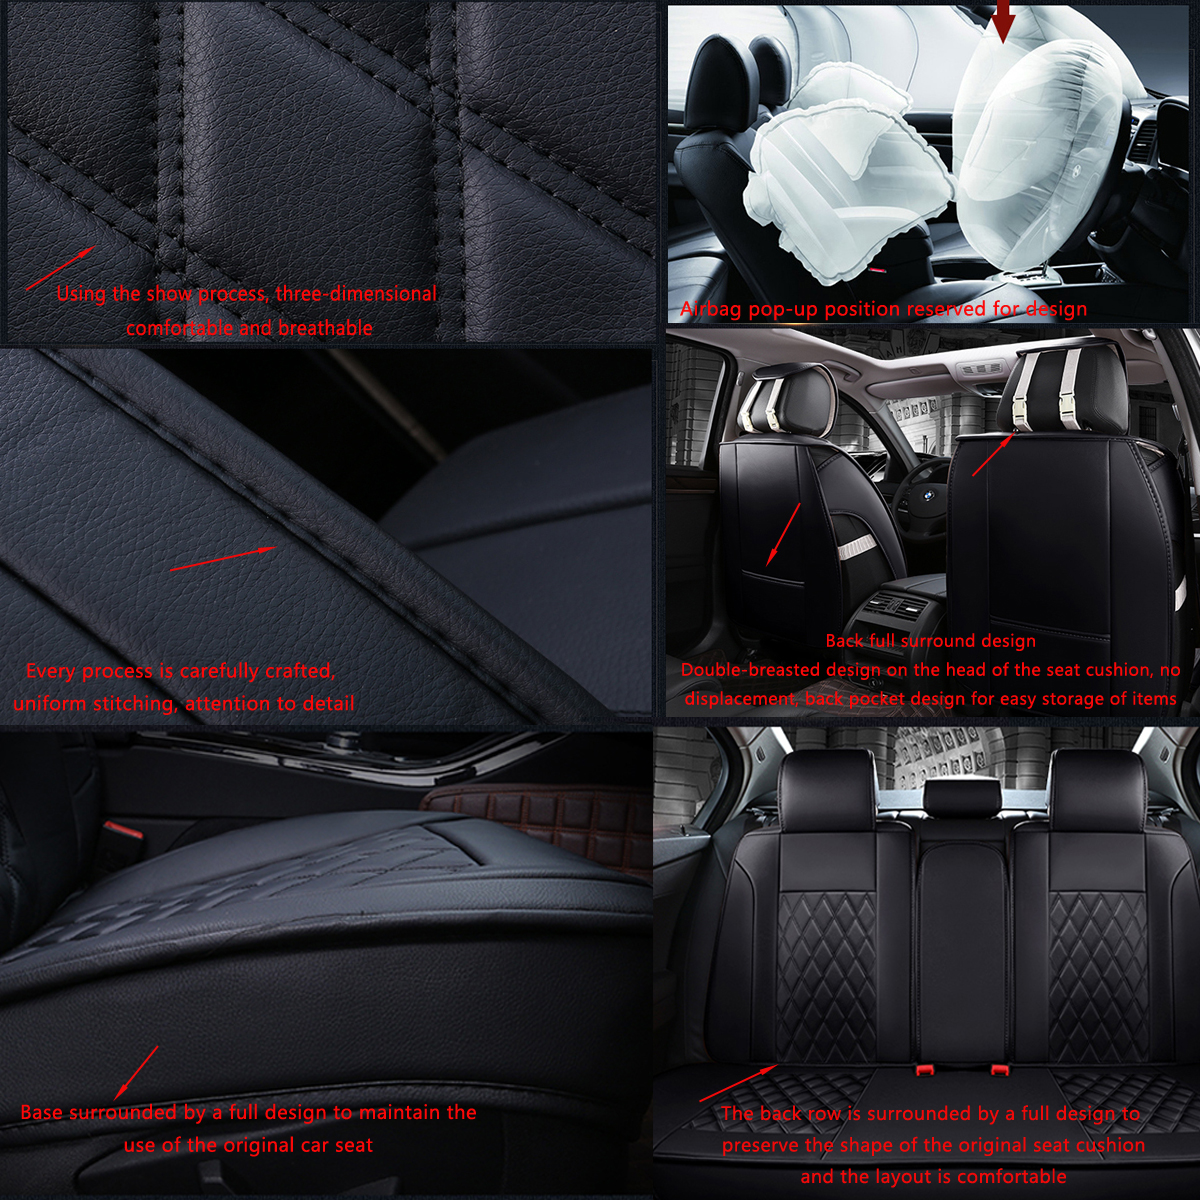 Leather Car Full Surround Seat Cover Cushion Protector Set Universal for 5 Seats Car